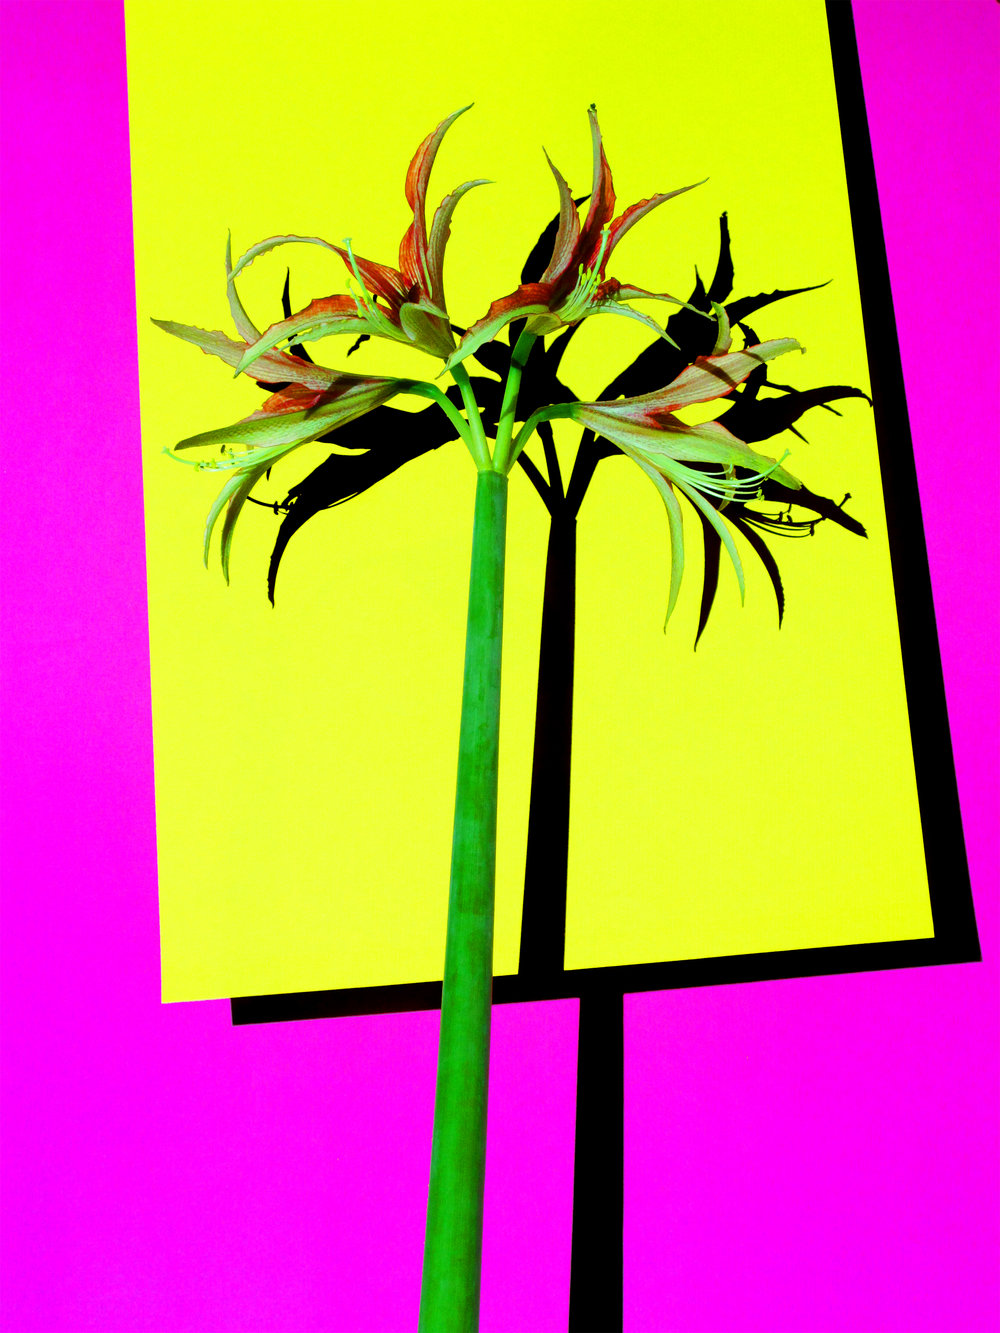 16x20_magenta_yellow_spike.jpg